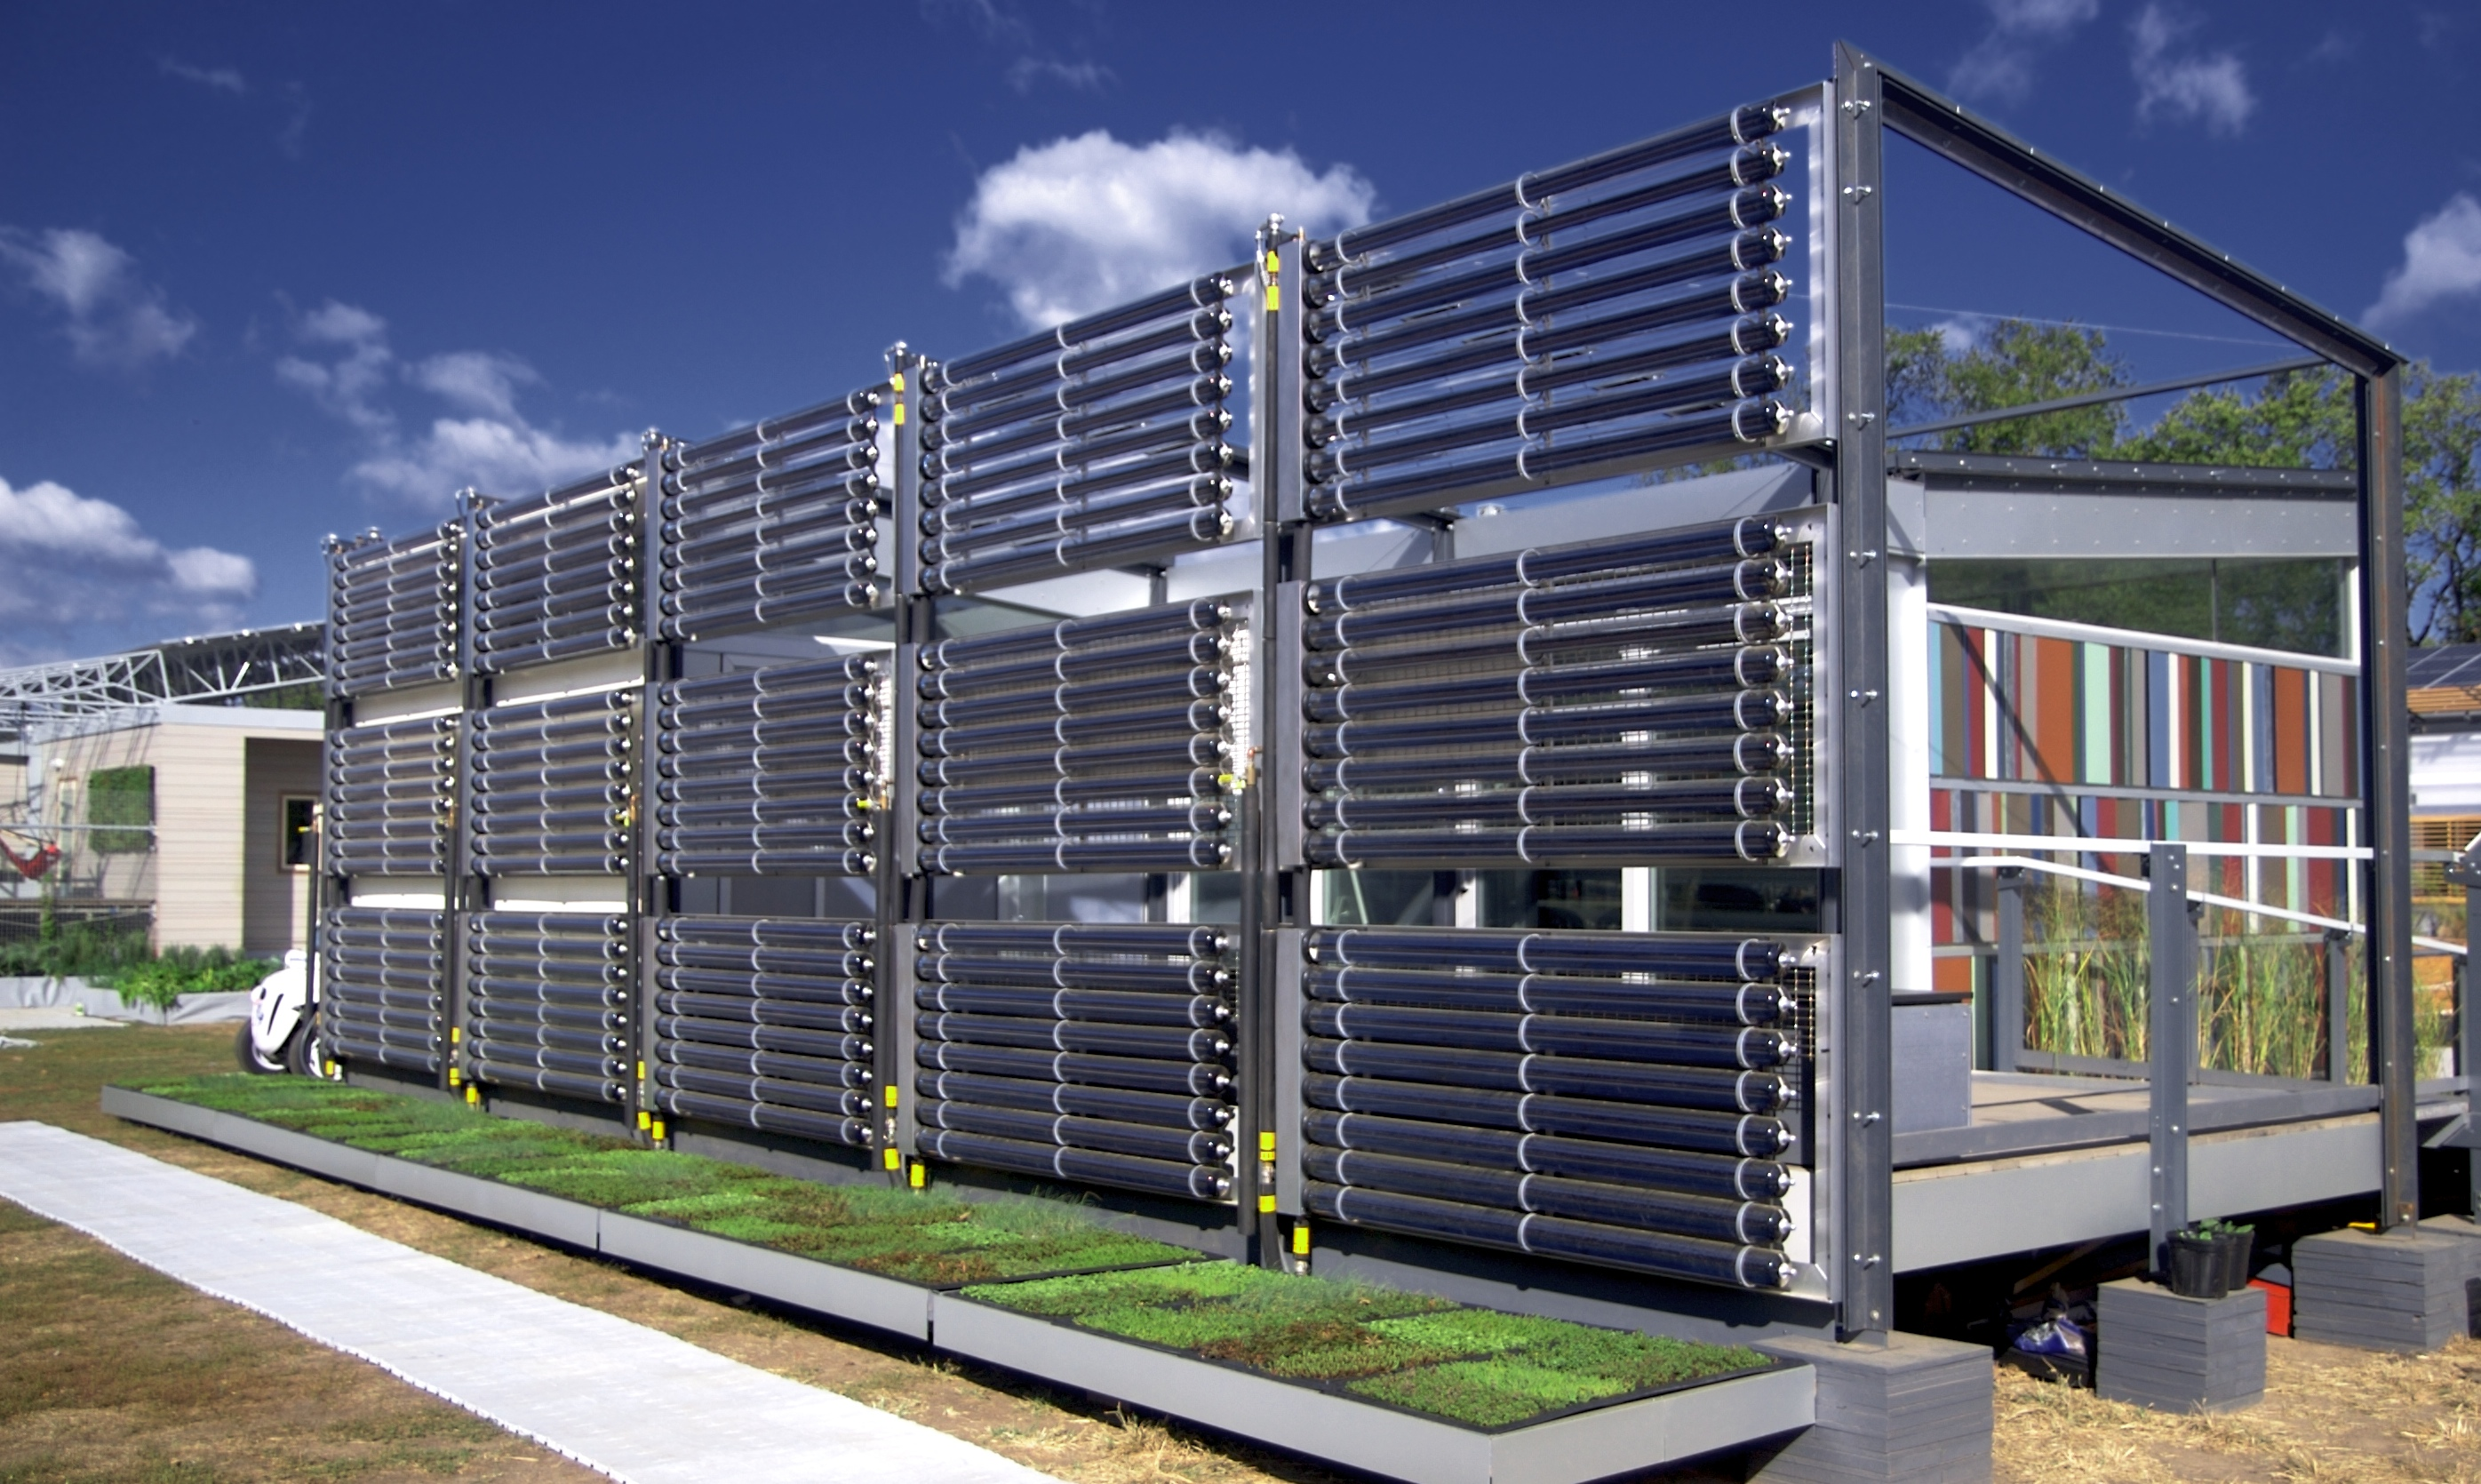 File:University of Cincinnati house (solar panels) at ...